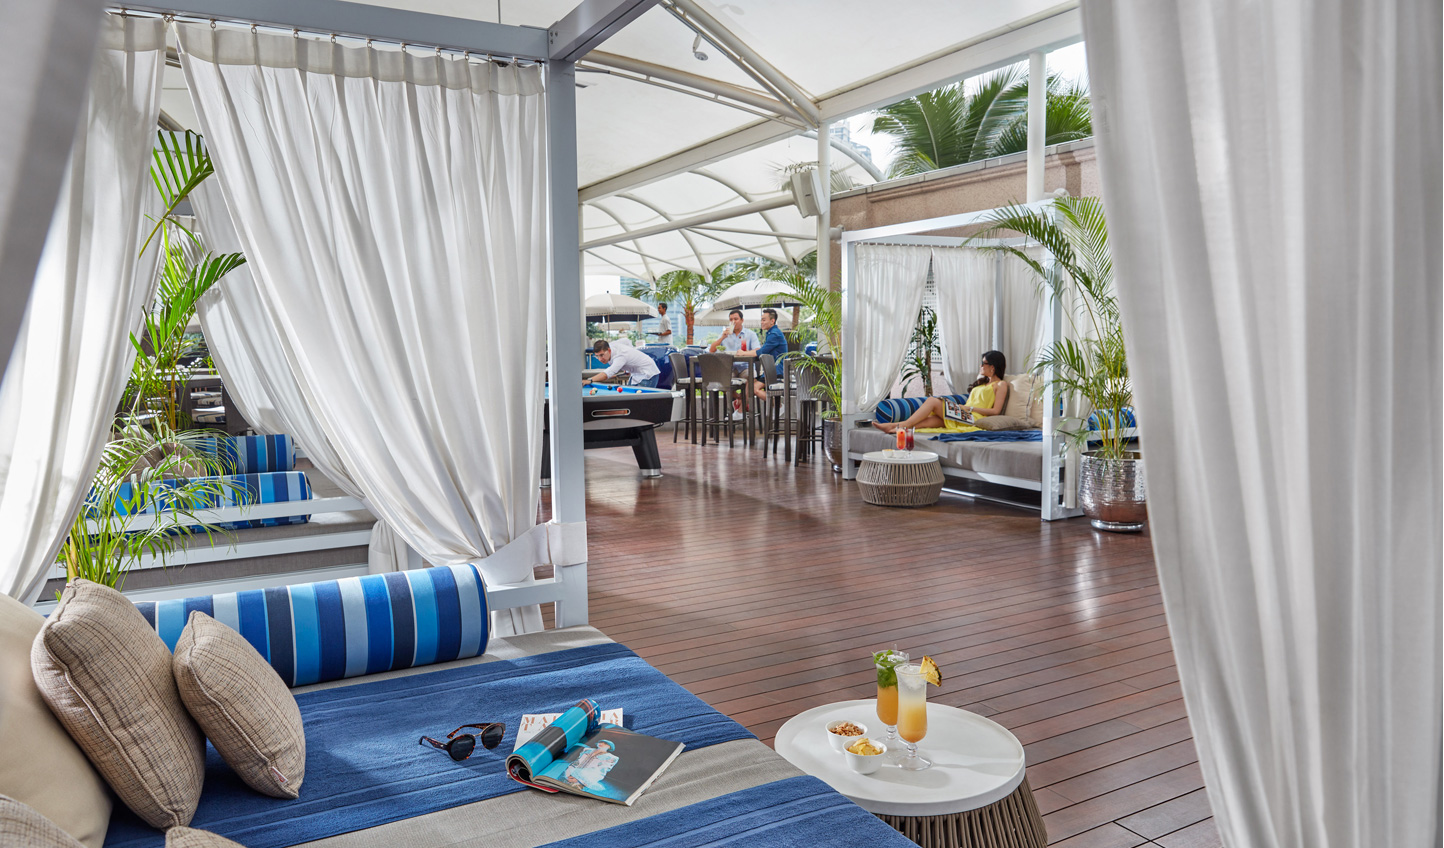 Relax in the day beds by the pool